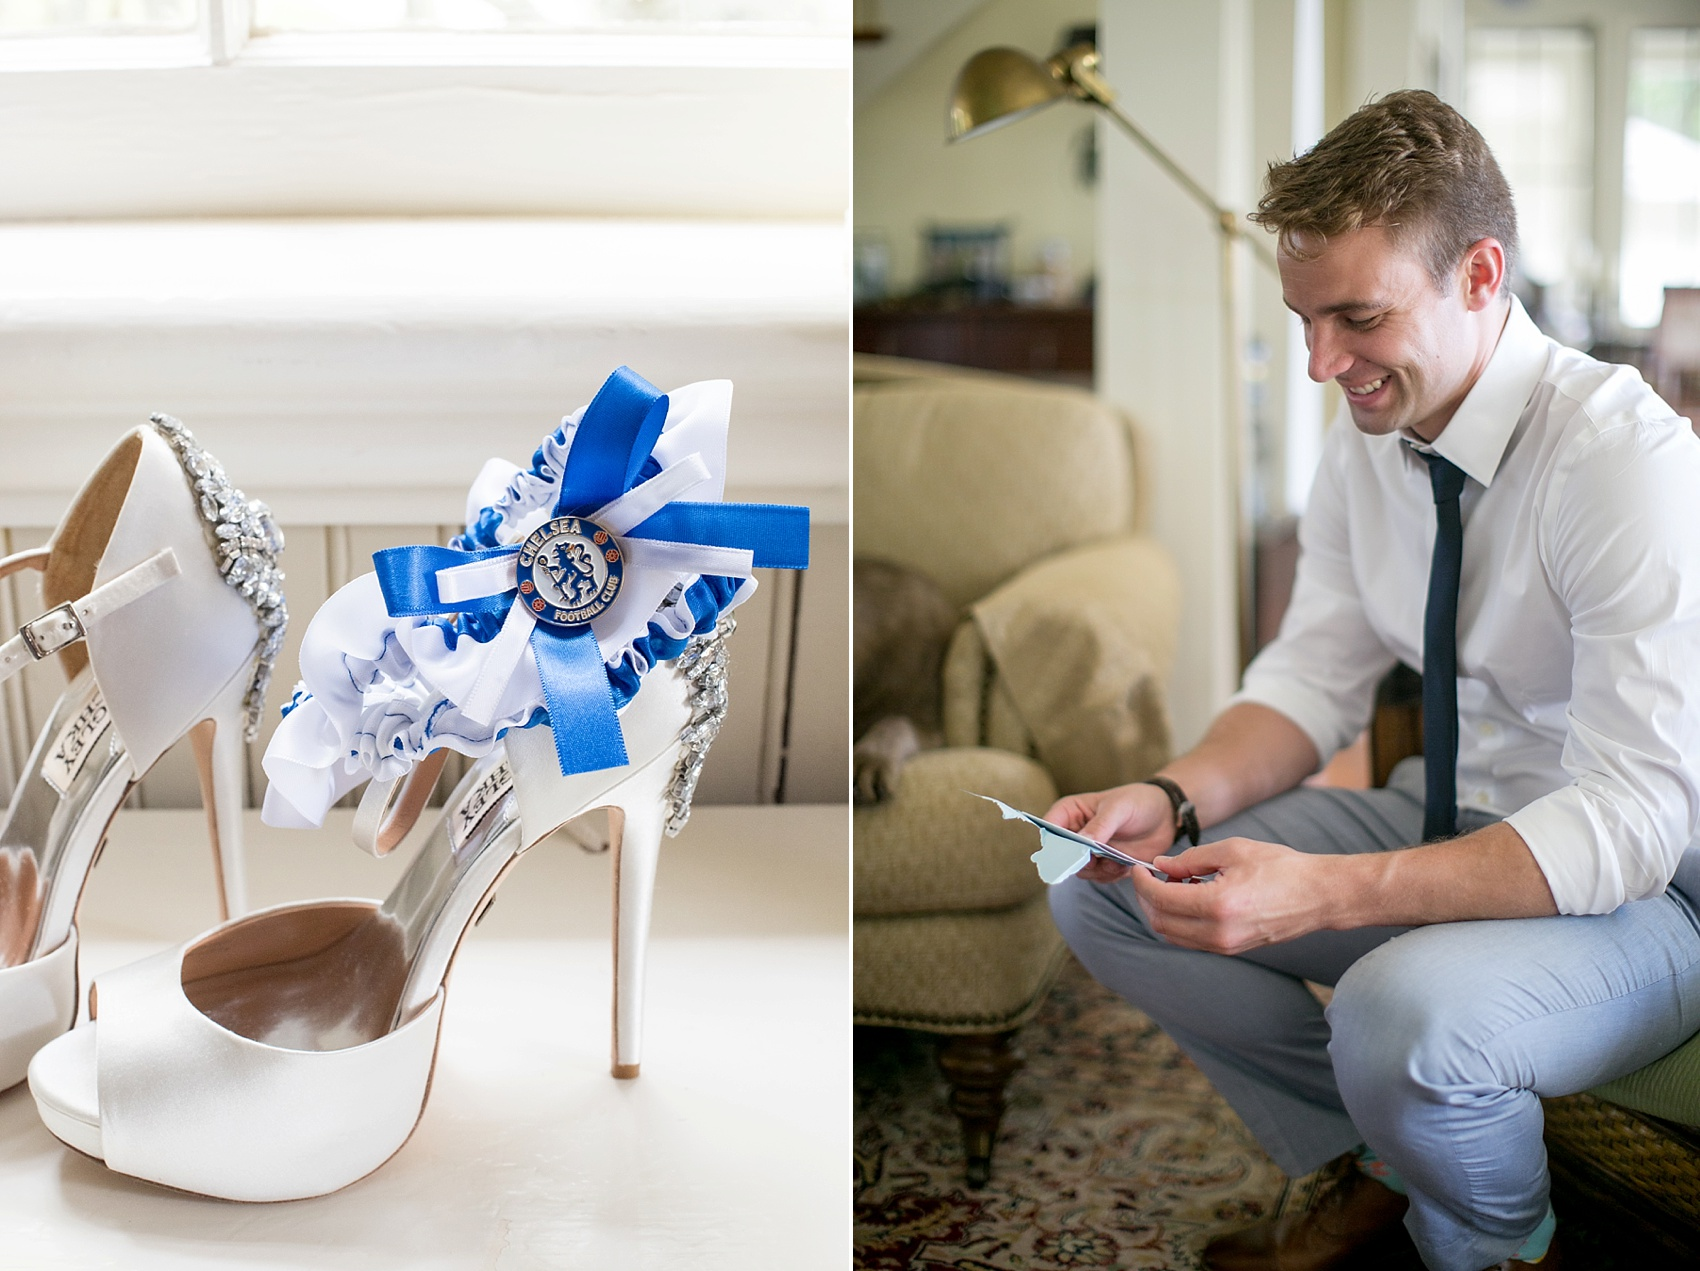 Custom soccer team garter for a southern wedding in South Carolina. Photos by Mikkel Paige in Hilton Head, Haig Point.